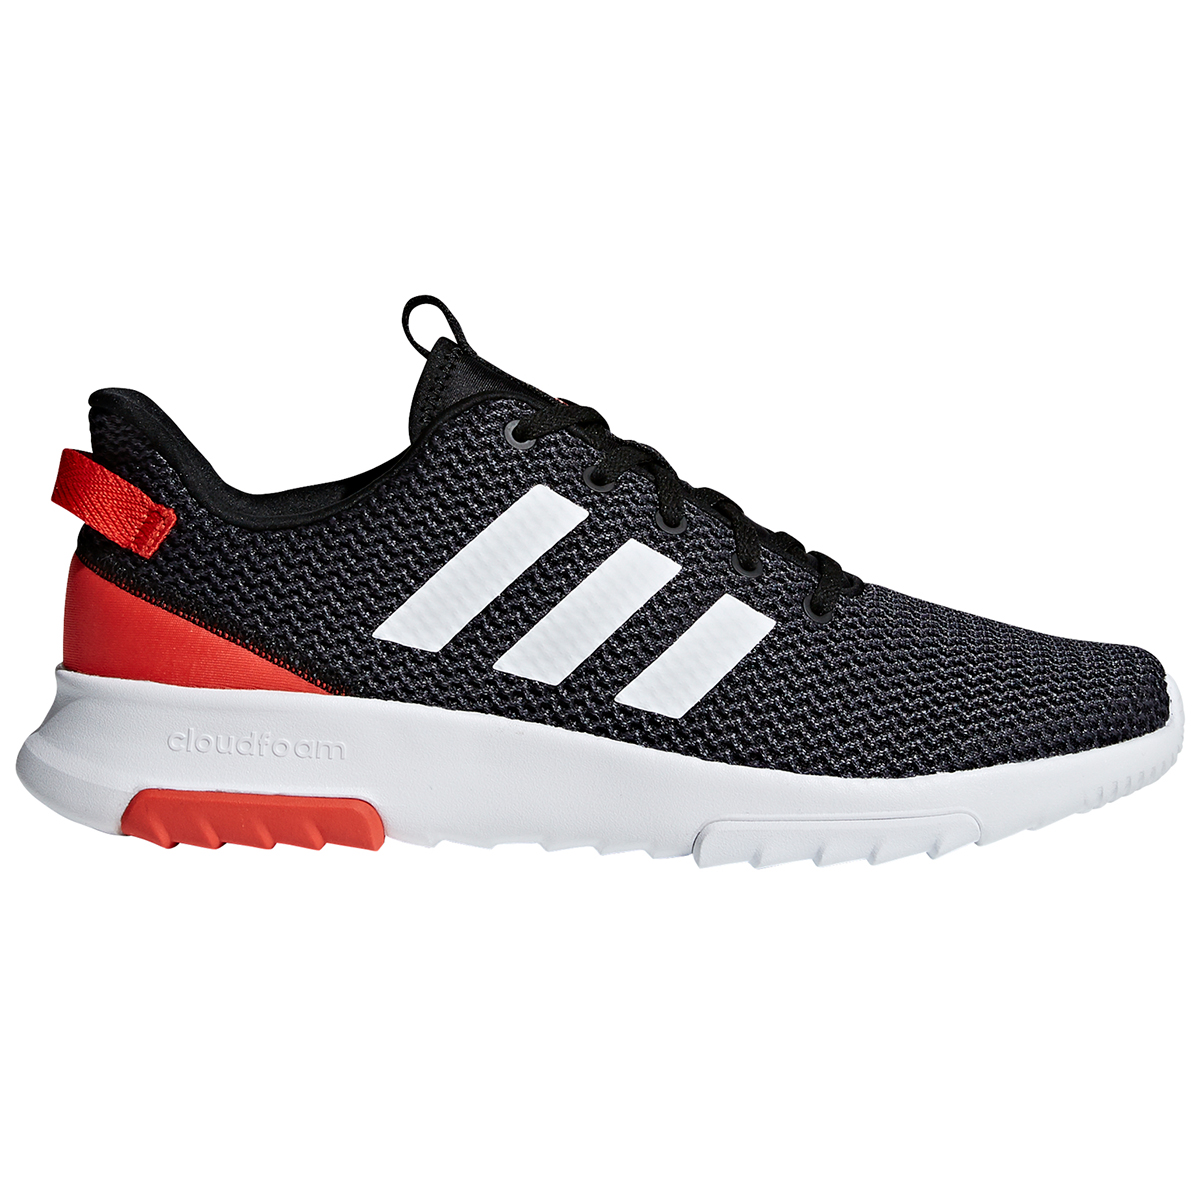 Adidas Men's Neo Cloudfoam Racer Tr Running Shoes - Black, 12